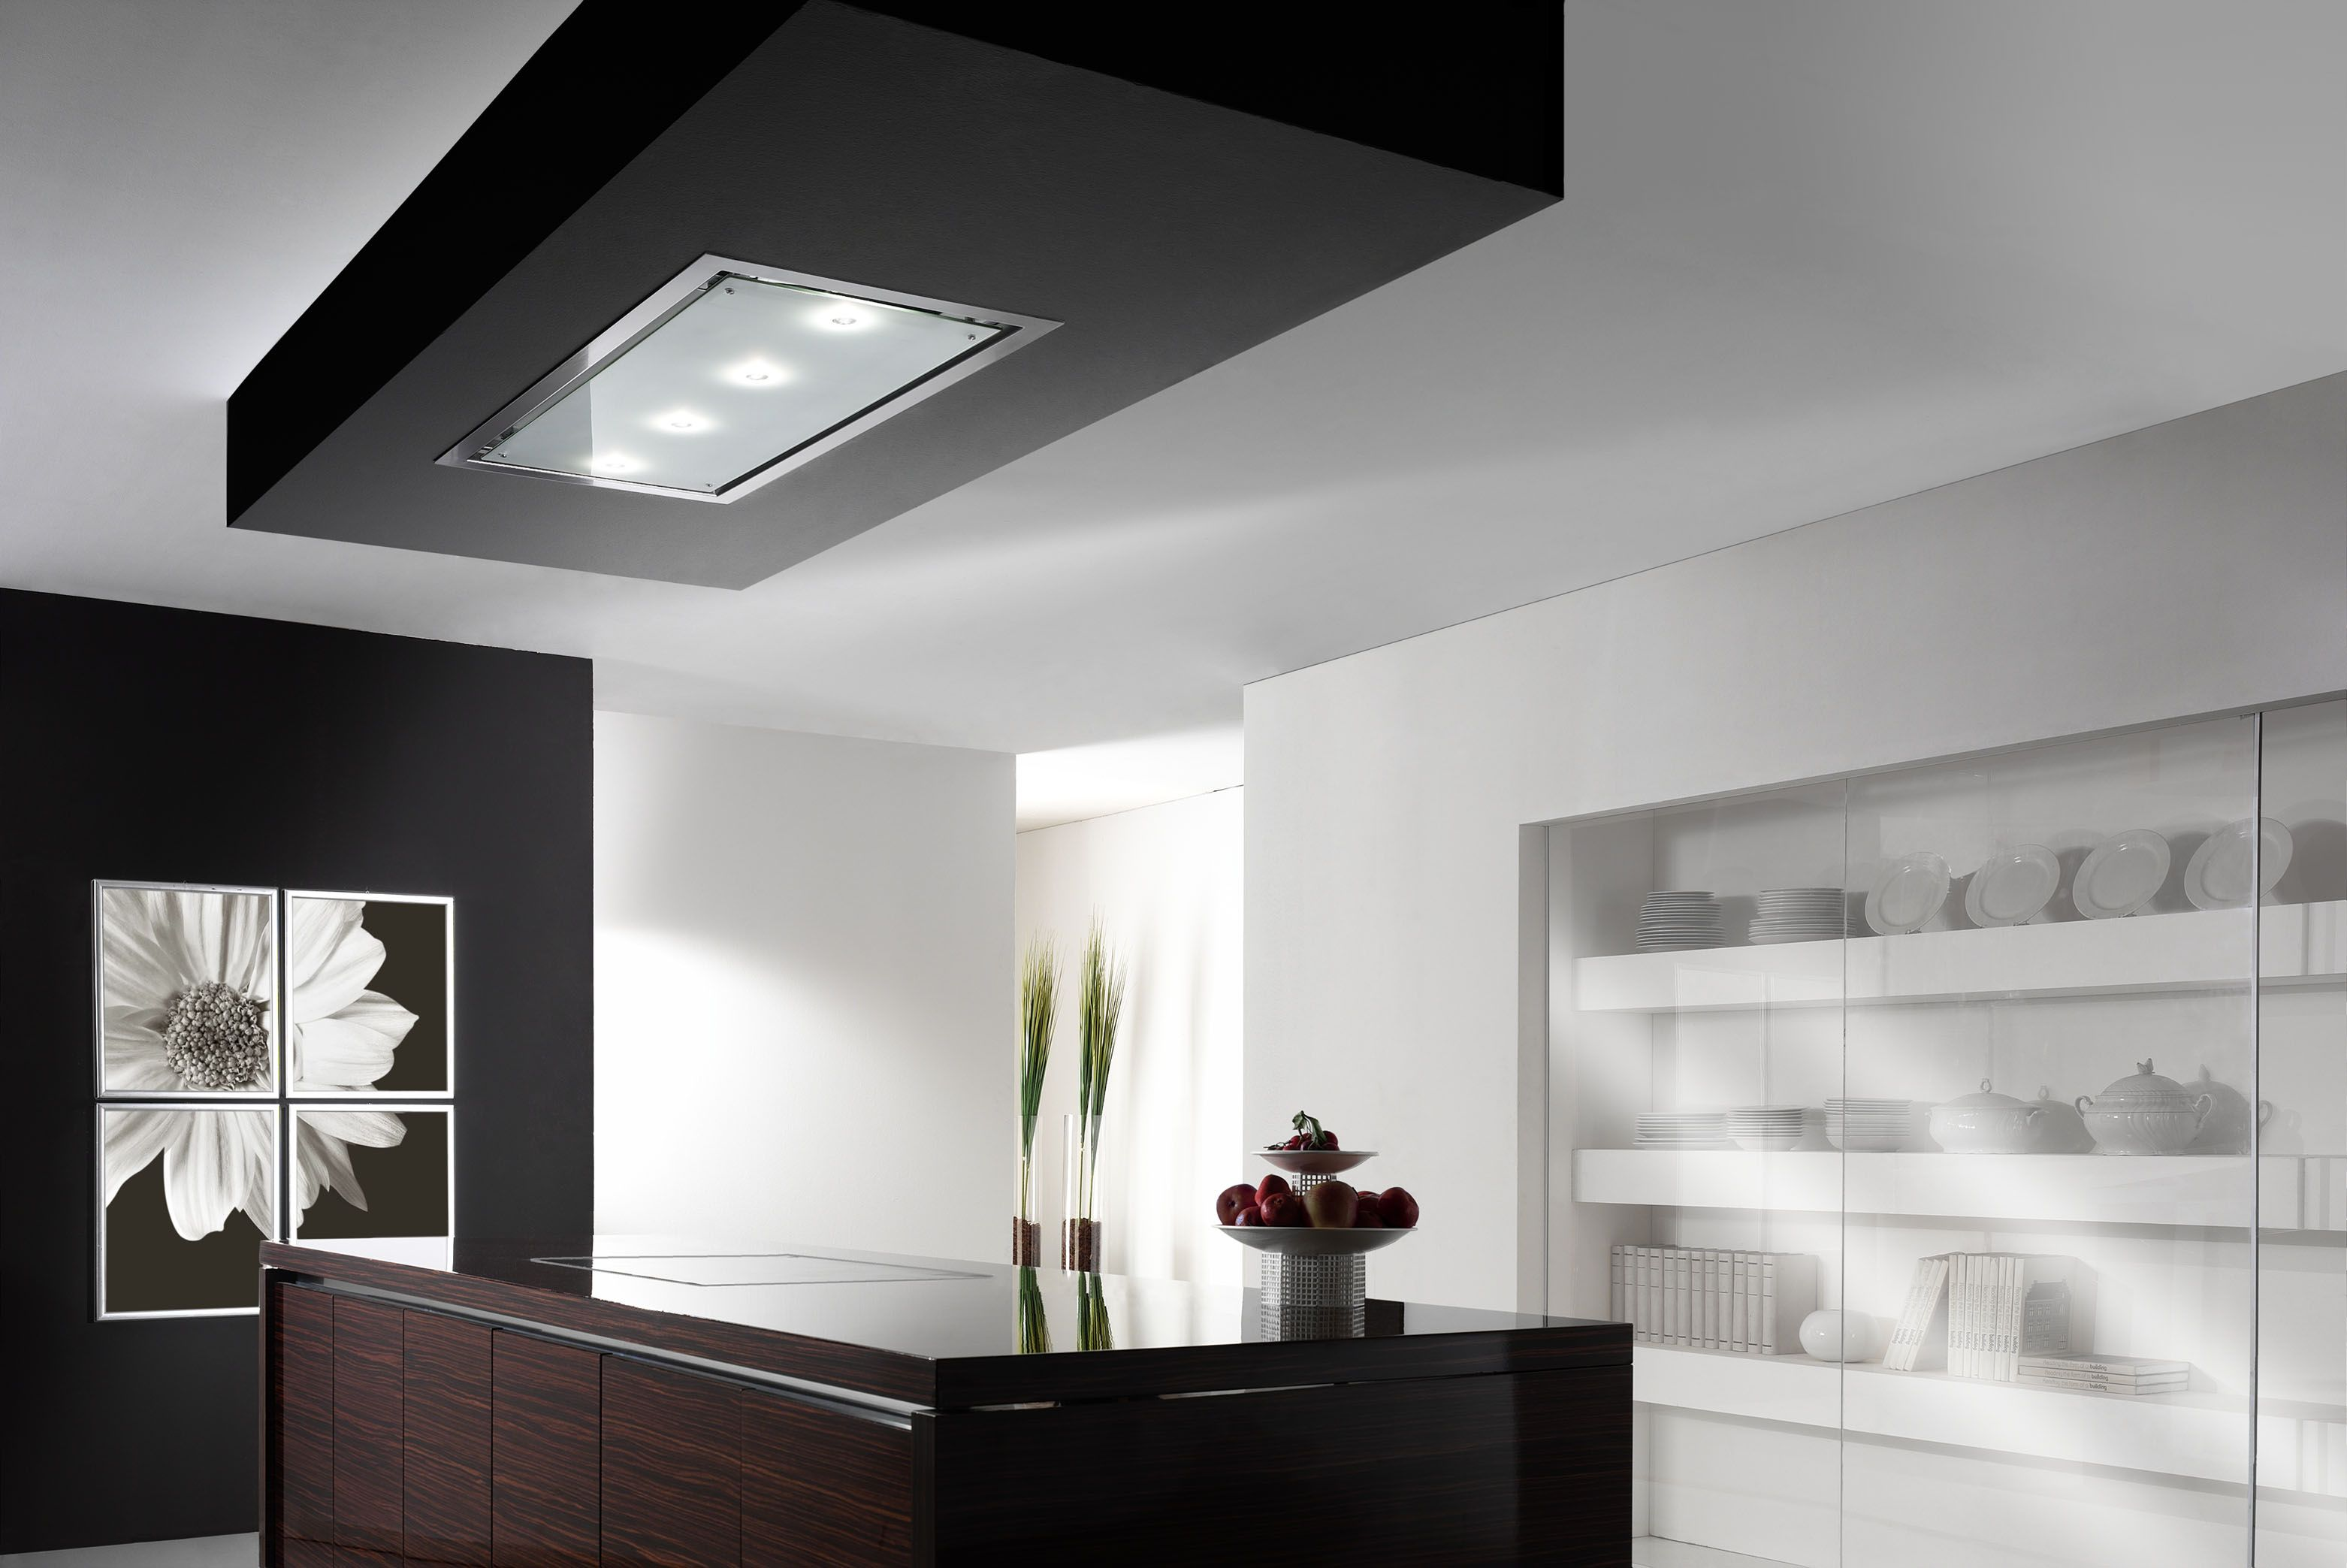 Offene Küche Abzug Ceiling Mounted Extractor Hood In Suspended Ceiling Home